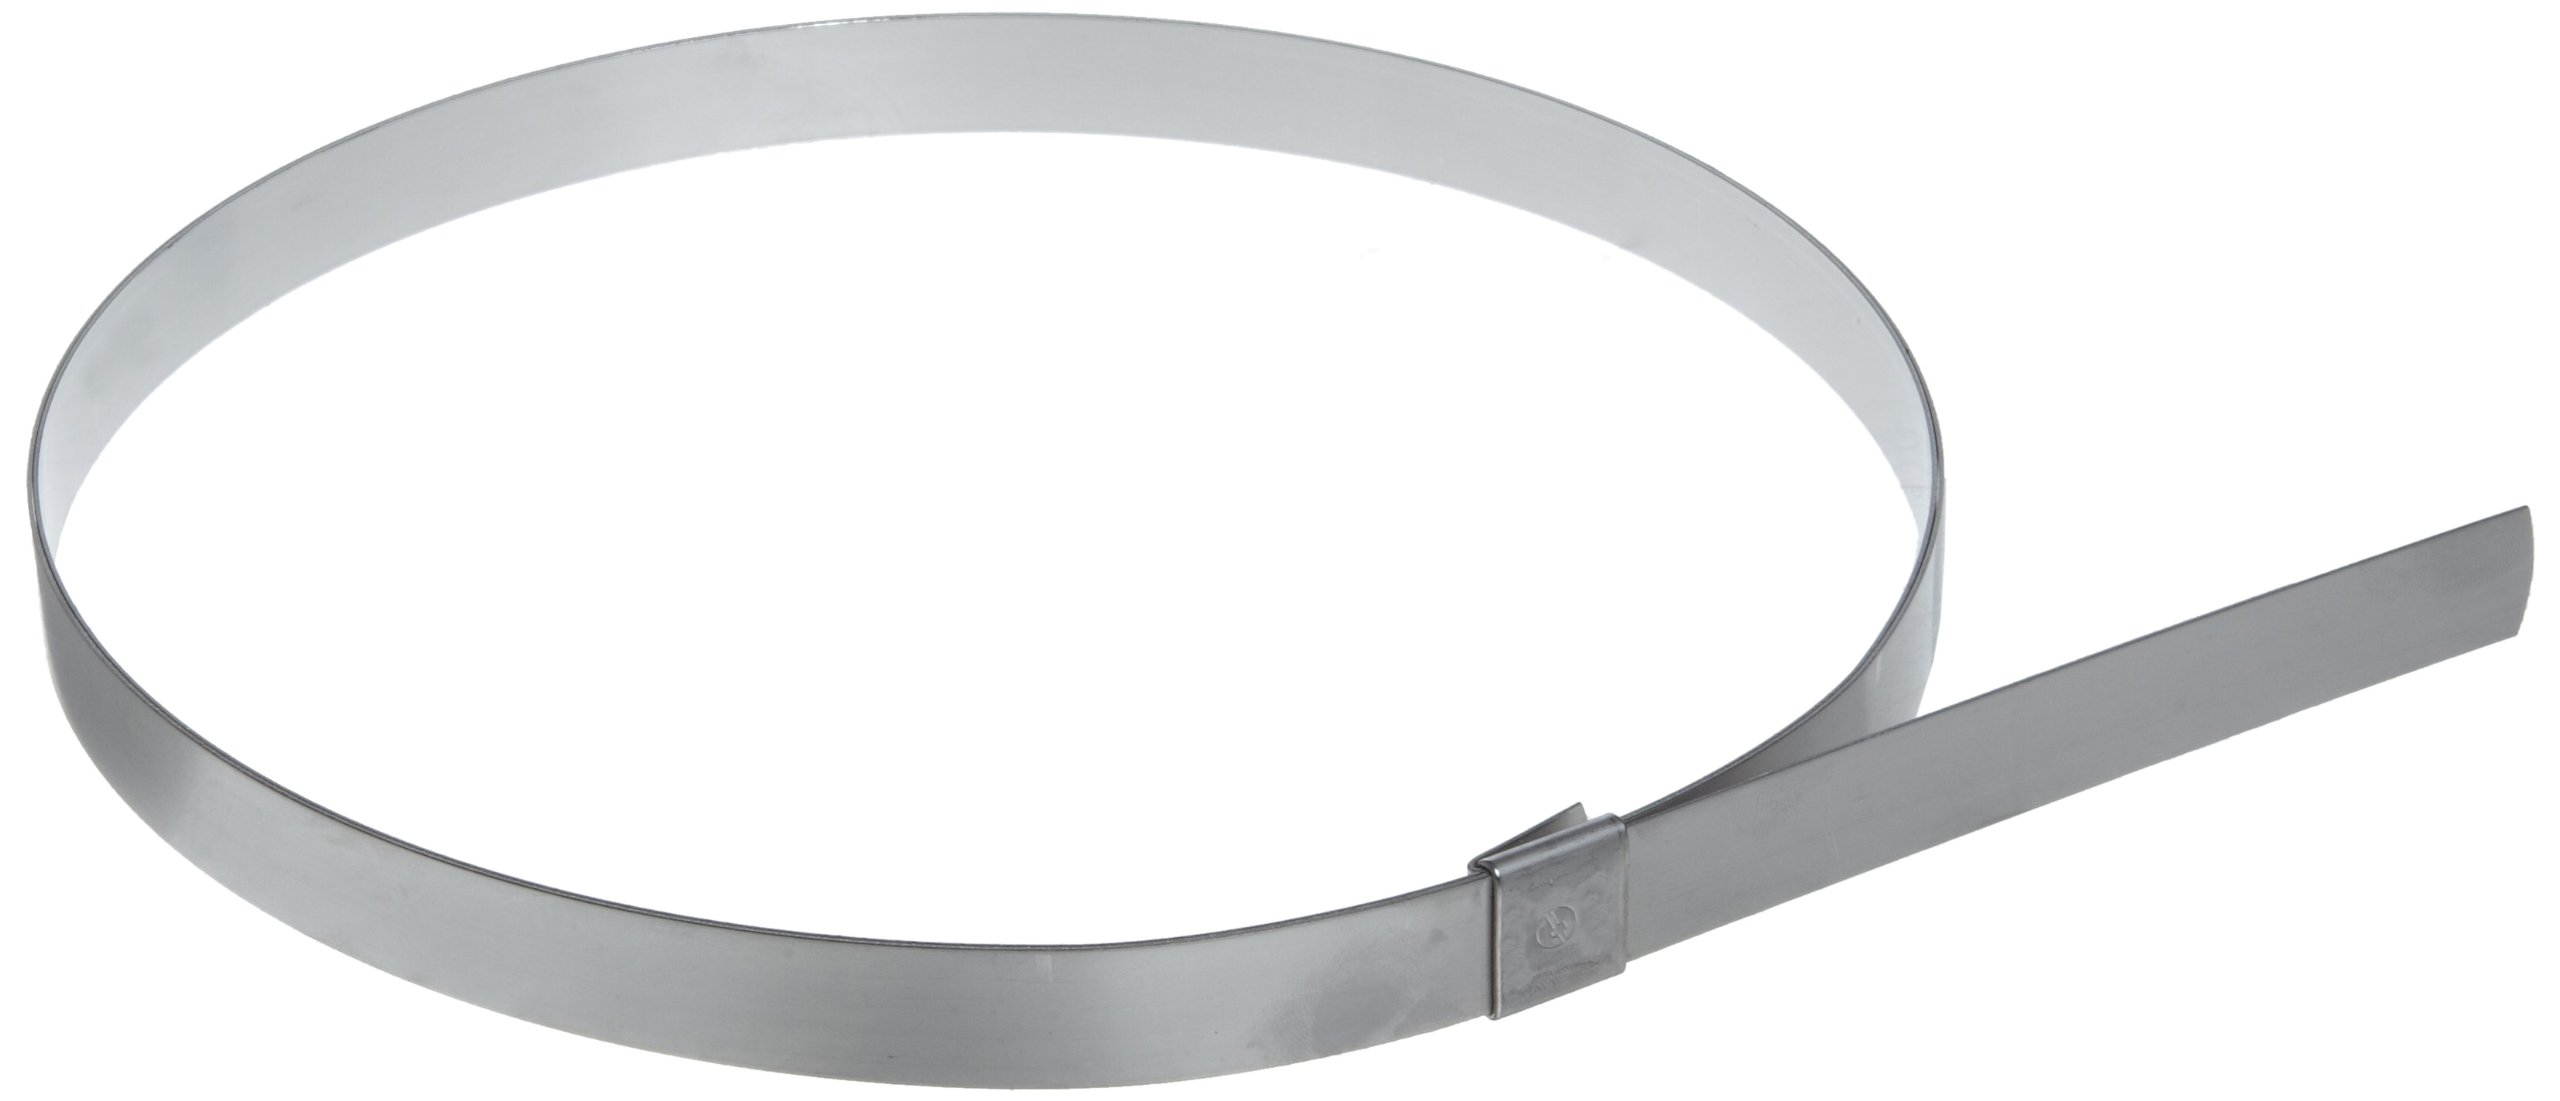 BAND-IT CP18S9 5/8'' Wide x 0.025'' Thick 4-1/2'' Diameter, 201 Stainless Steel Center Punch Clamp (25 Per Box)